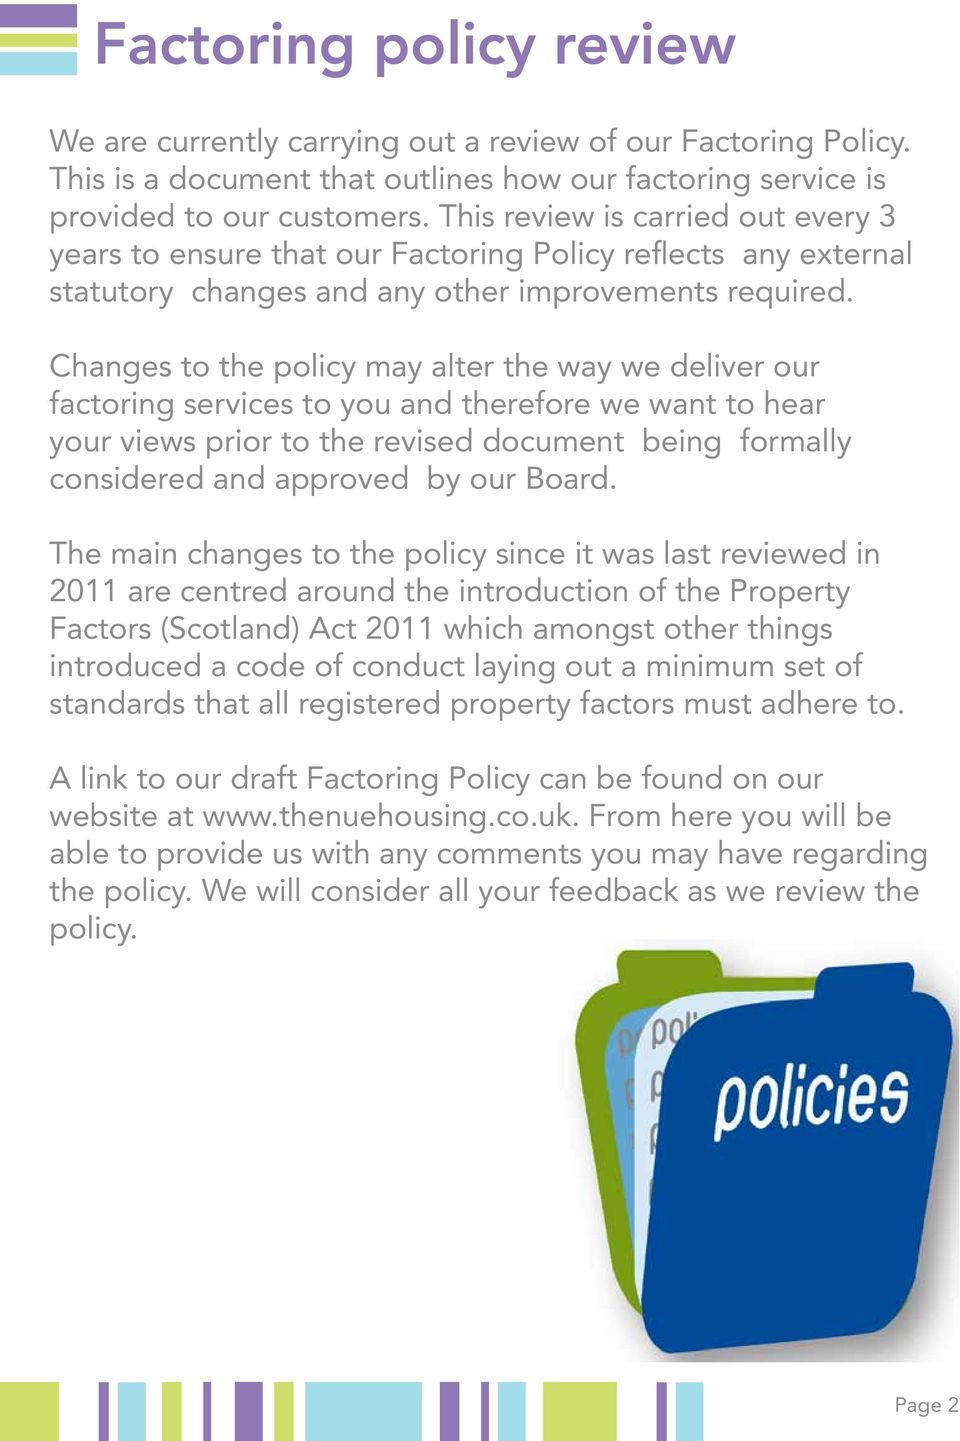 Changes to the policy may alter the way we deliver our factoring services to you and therefore we want to hear your views prior to the revised document being formally considered and approved by our